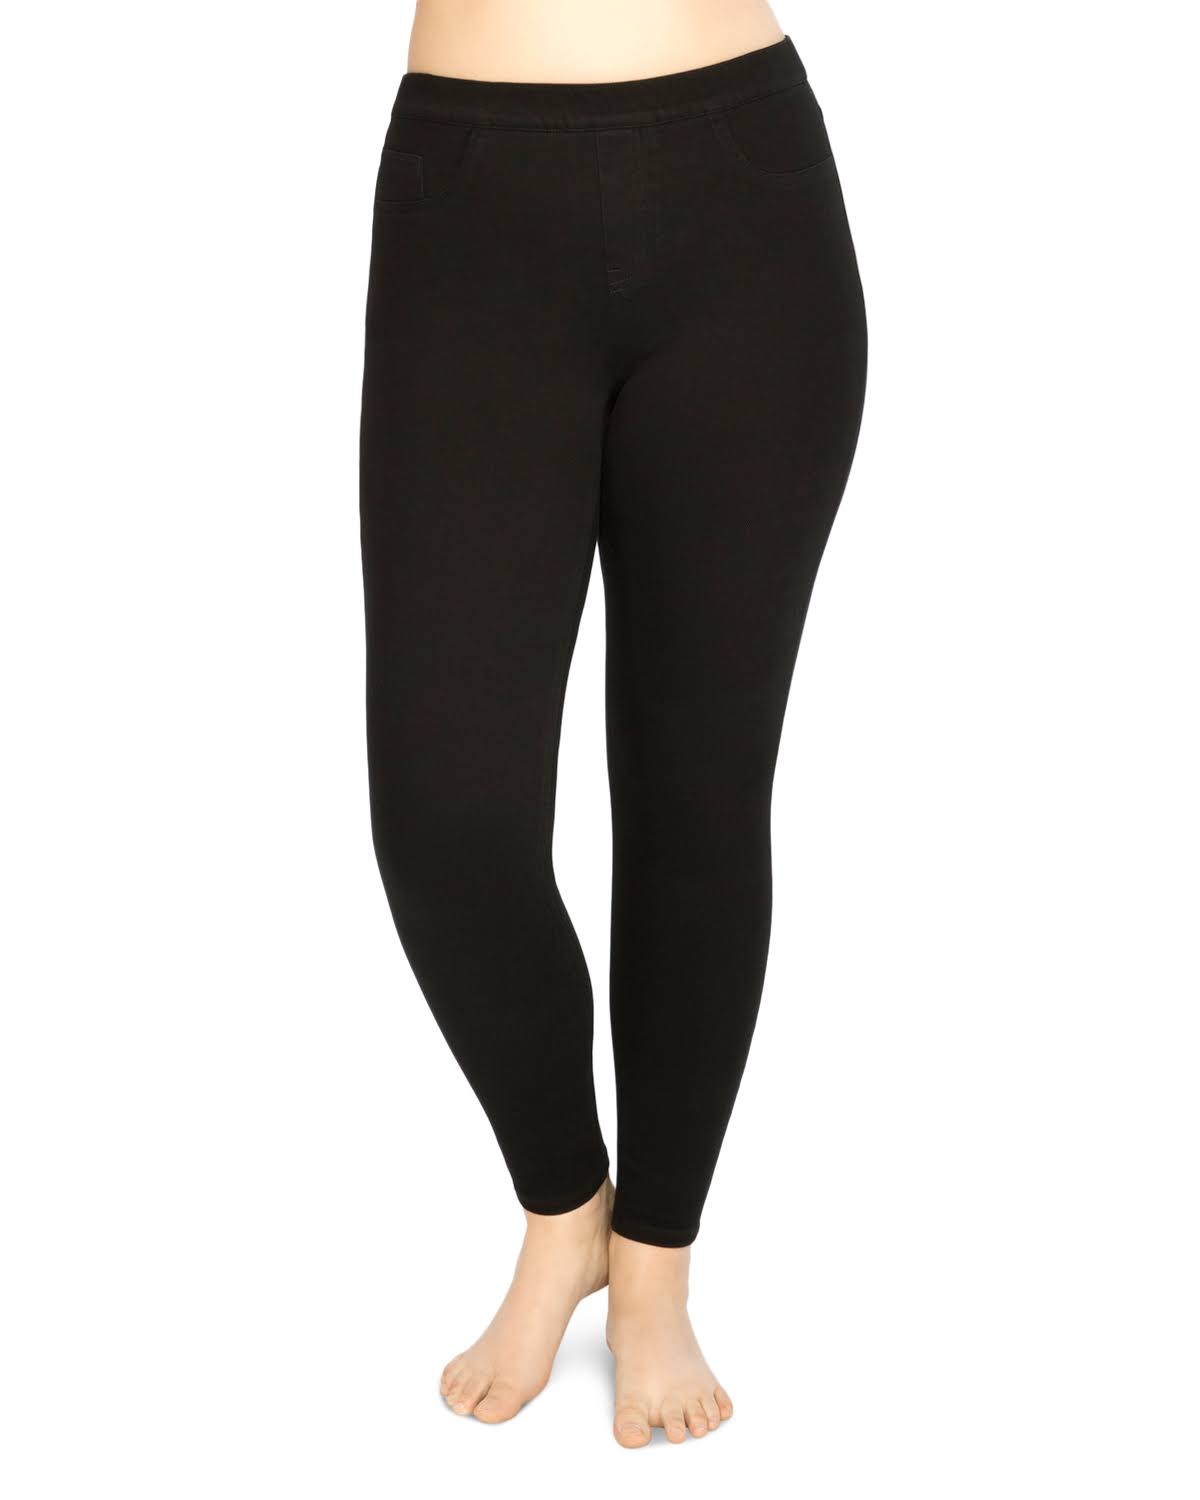 Spanx Plus Ankle Jean-ish Leggings - Black